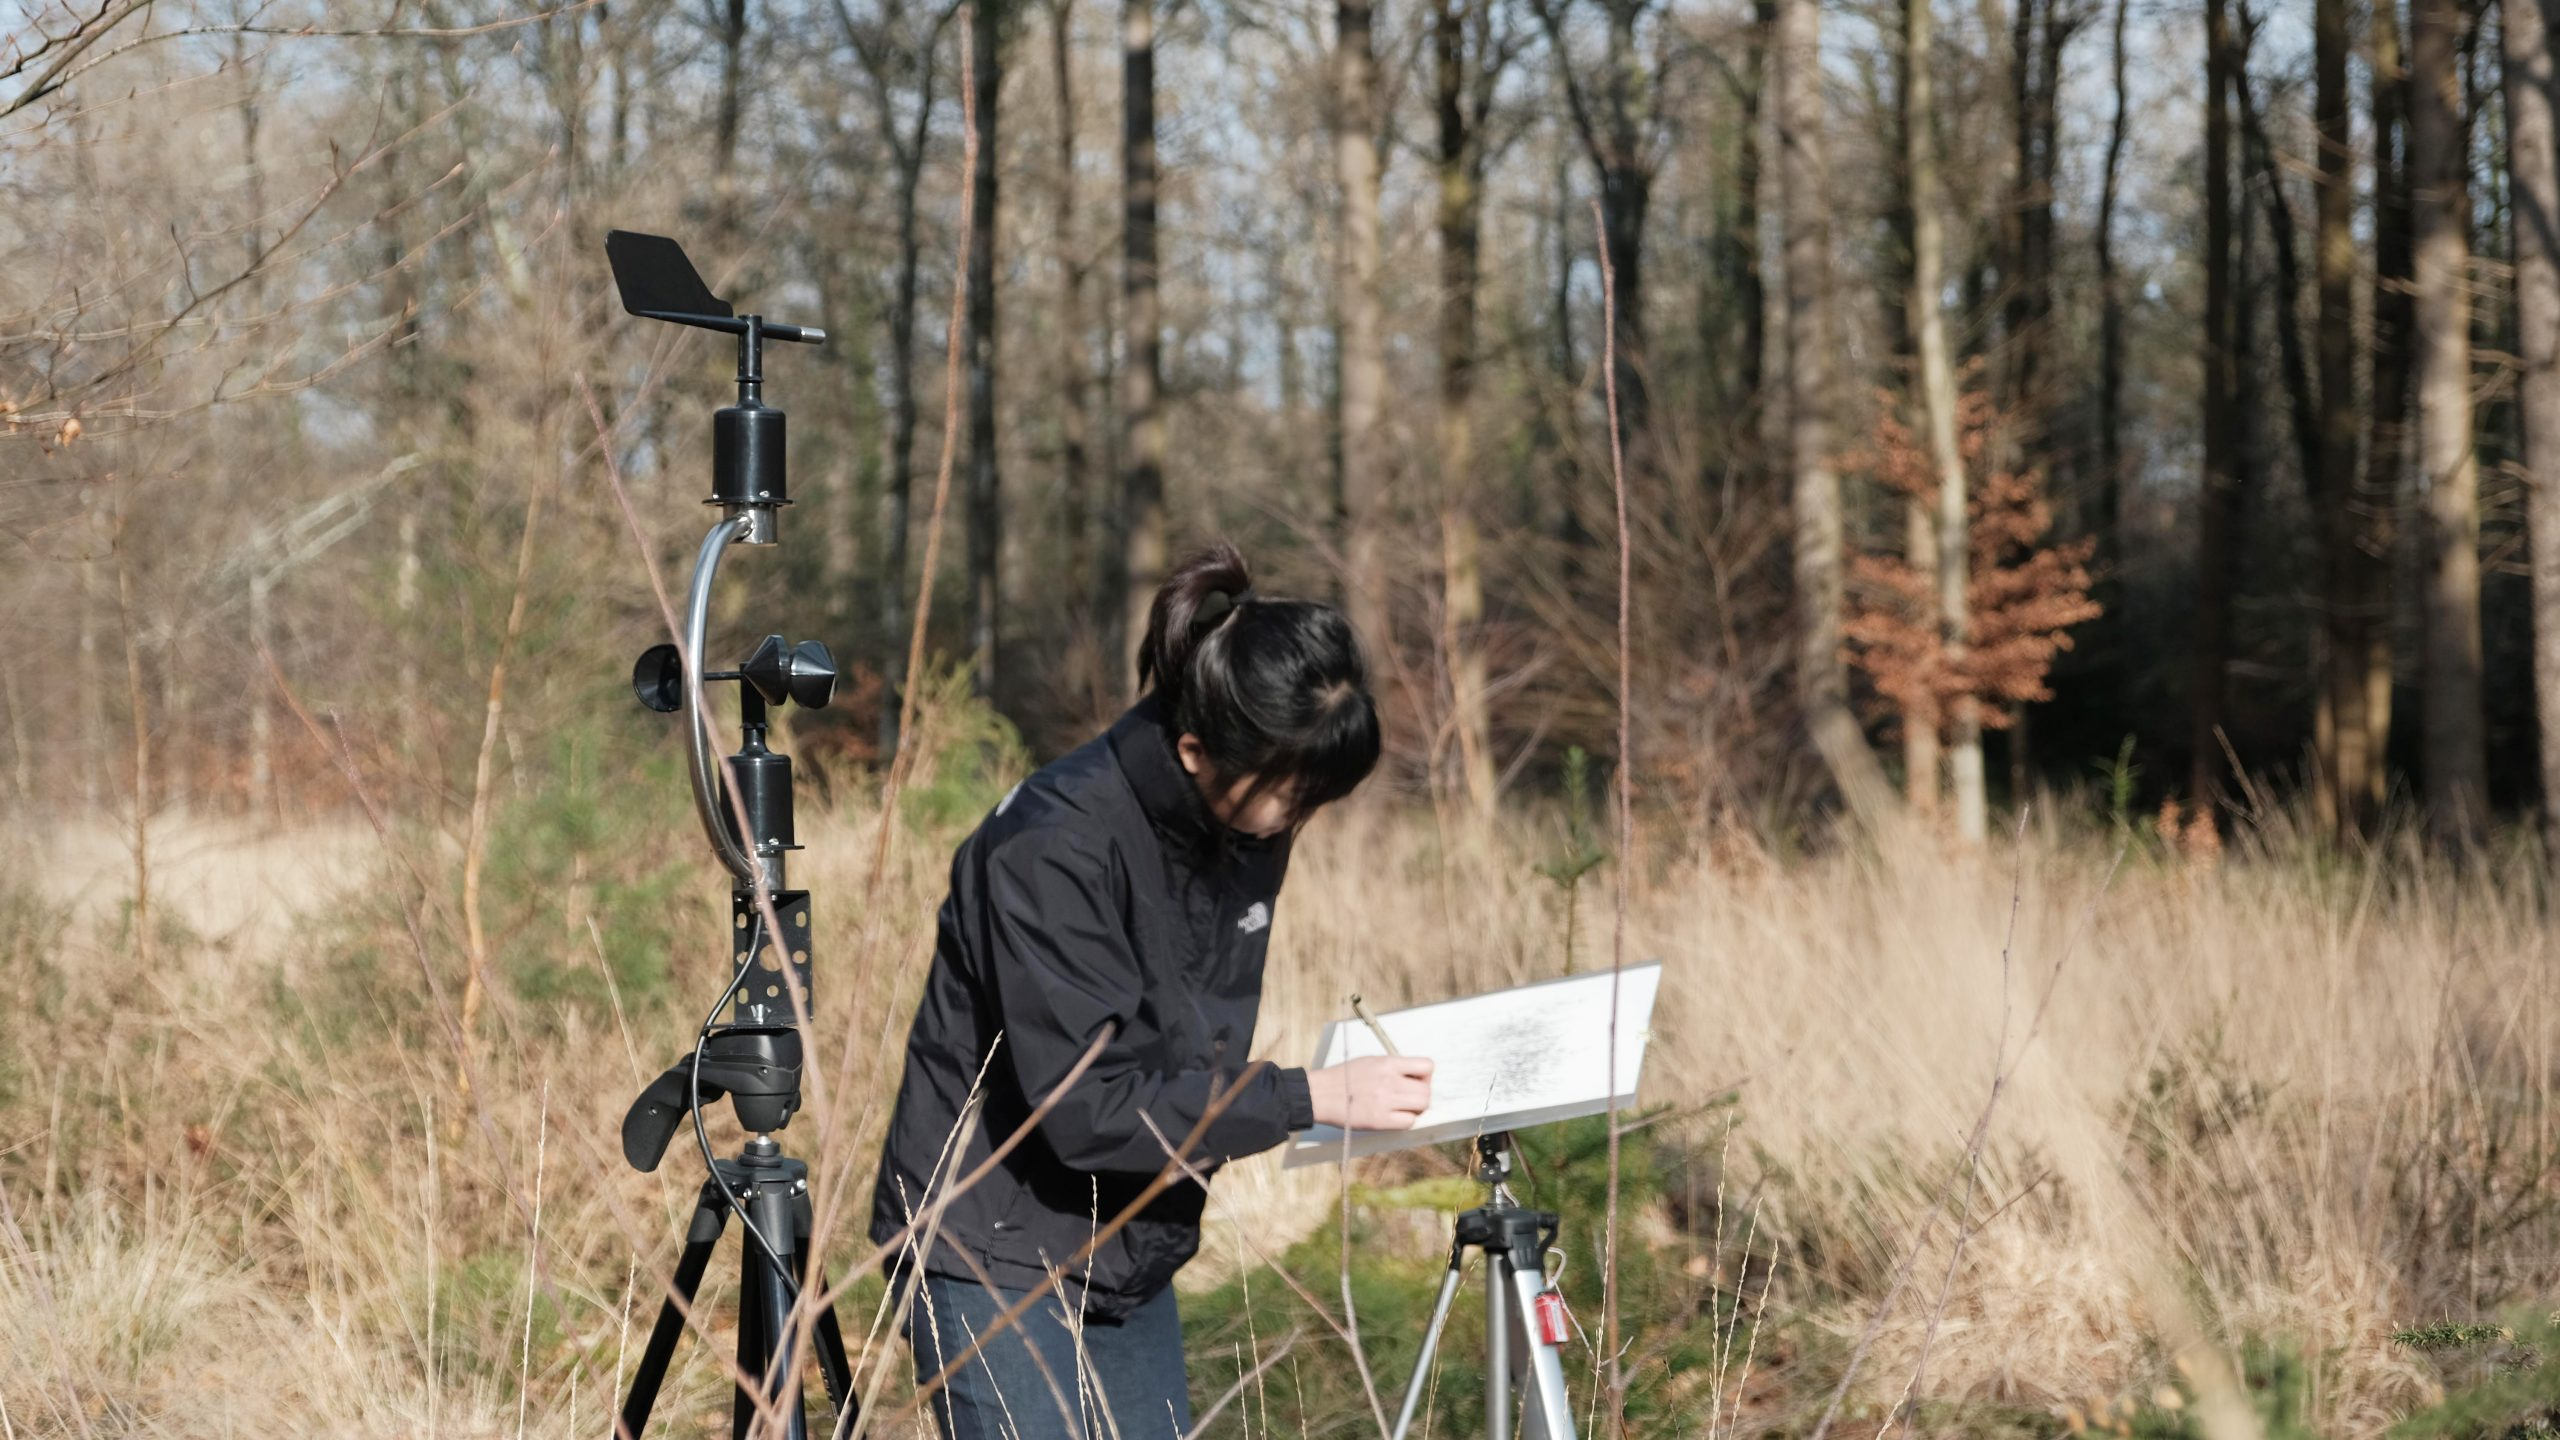 Artist with wind detector and drawing board standing in a dry grass landscape, with a forest in the background.